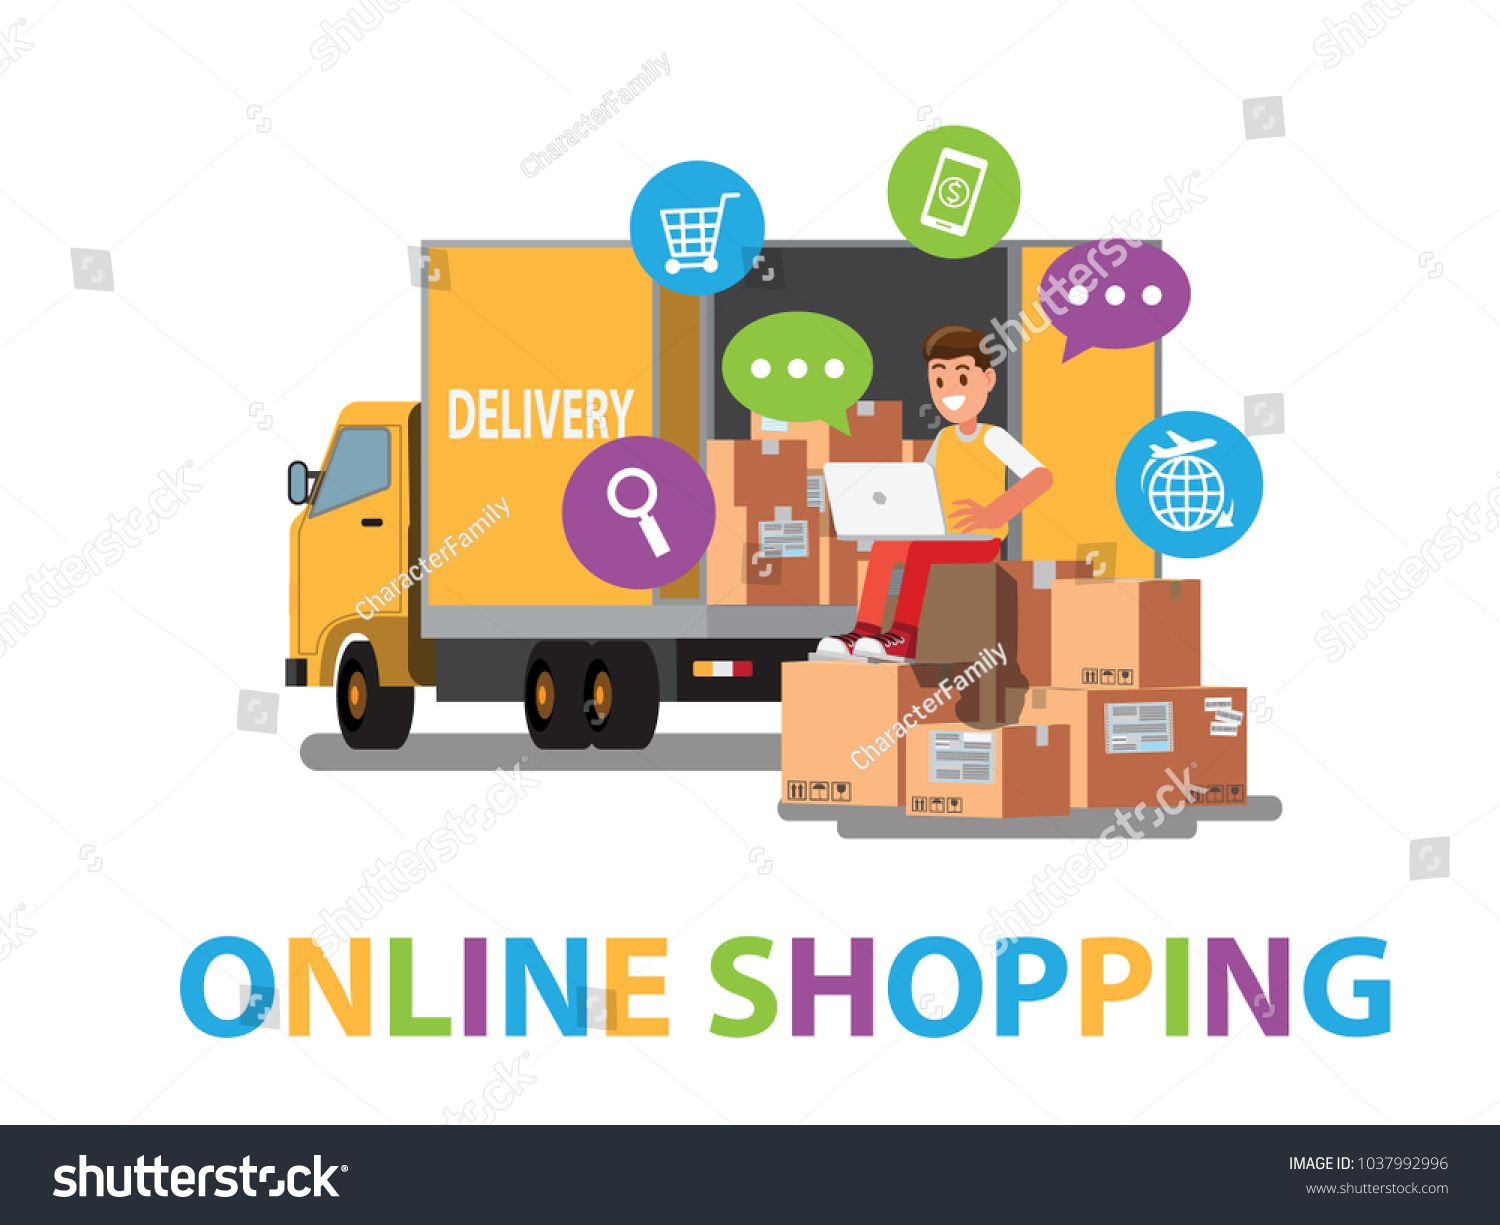 Why sell online